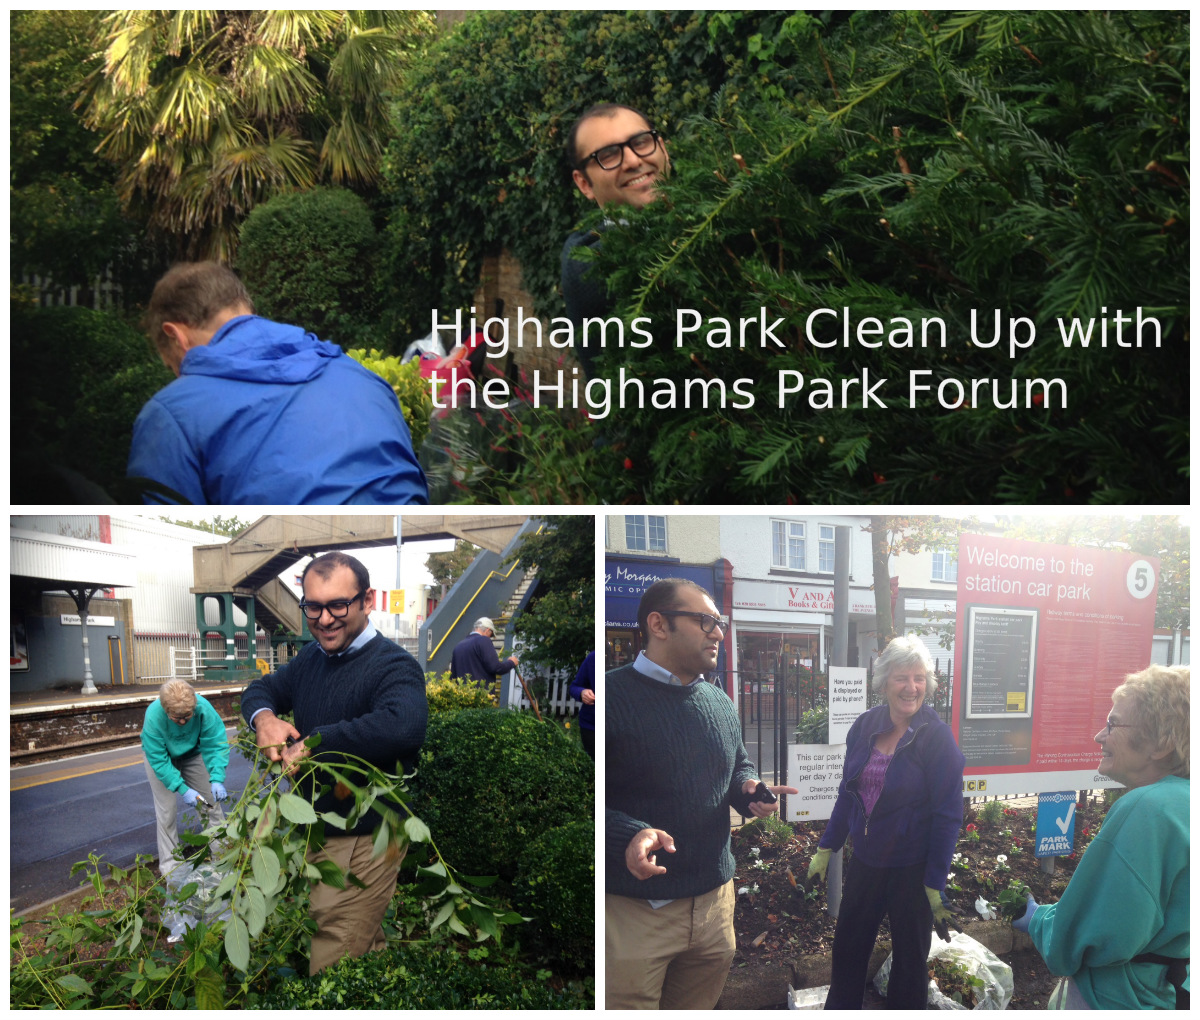 highams_park_clean_up_1.jpg